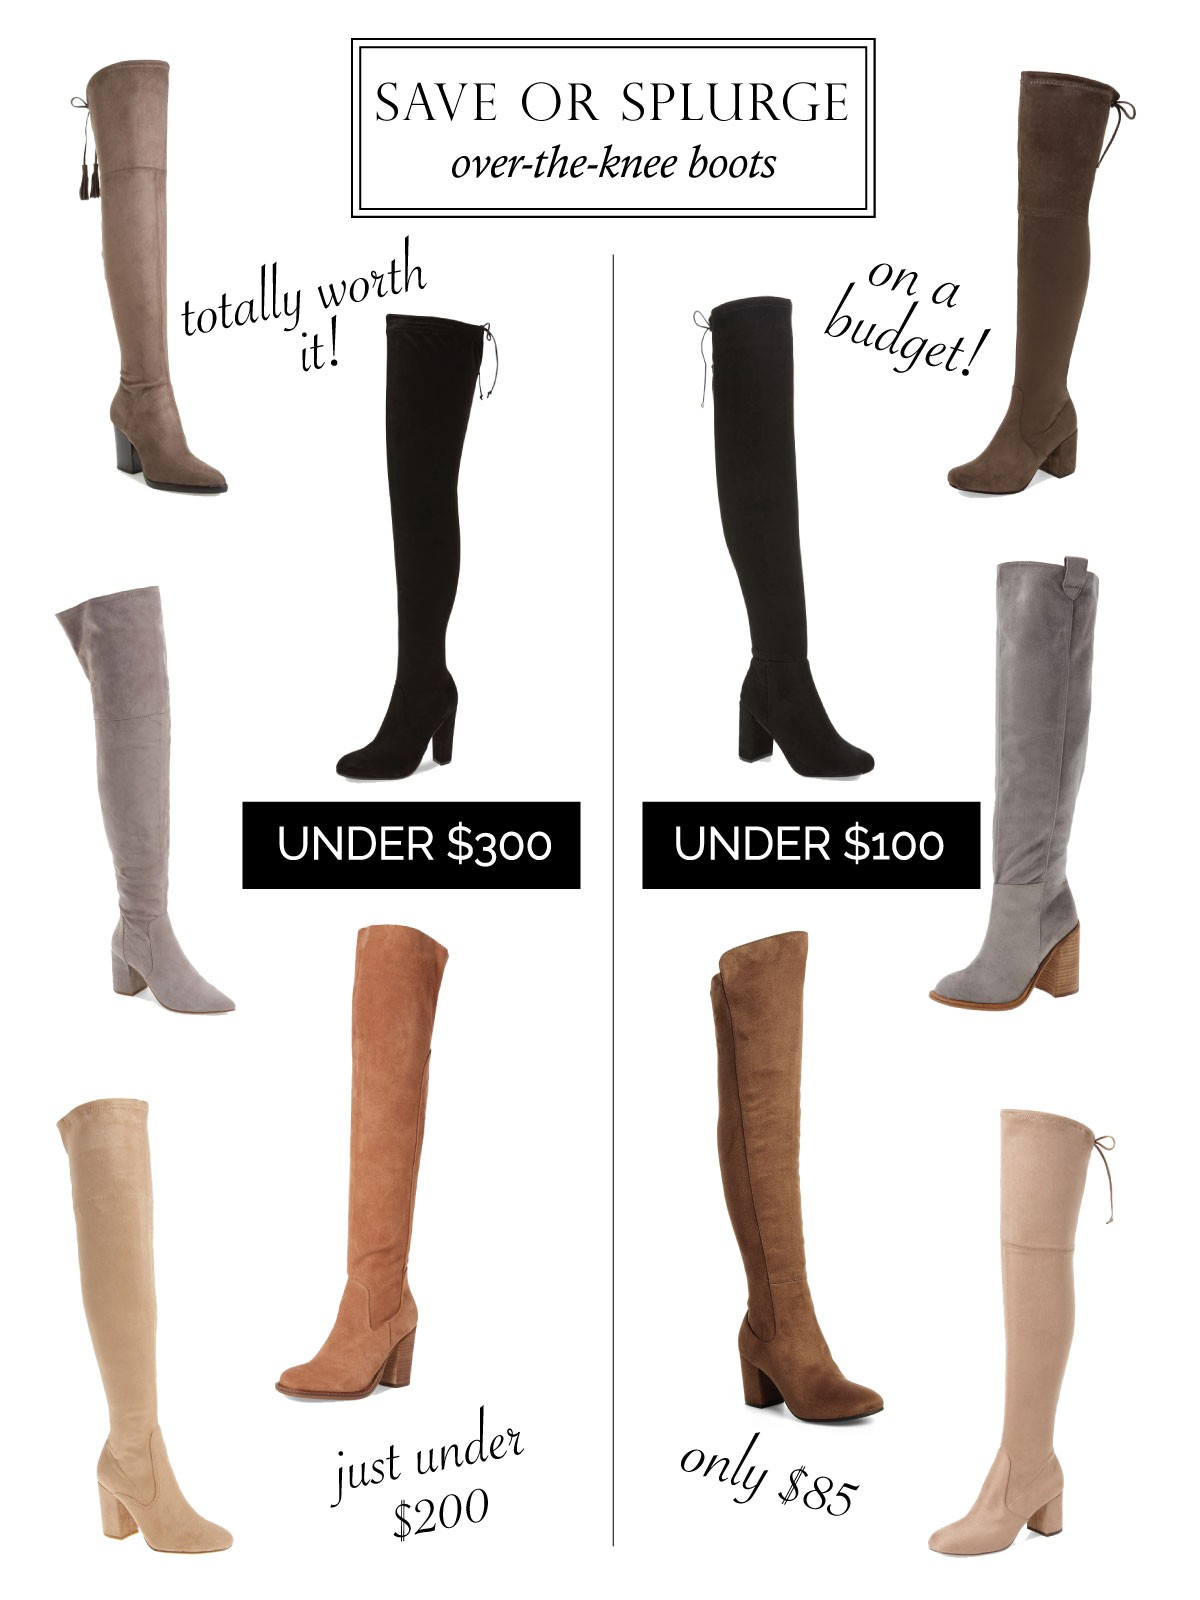 49459fd50e9 ... afford to splurge on the shoes we really really really want which is  why today I m showing you over-the-knee boot options for when you need to  SAVE or ...